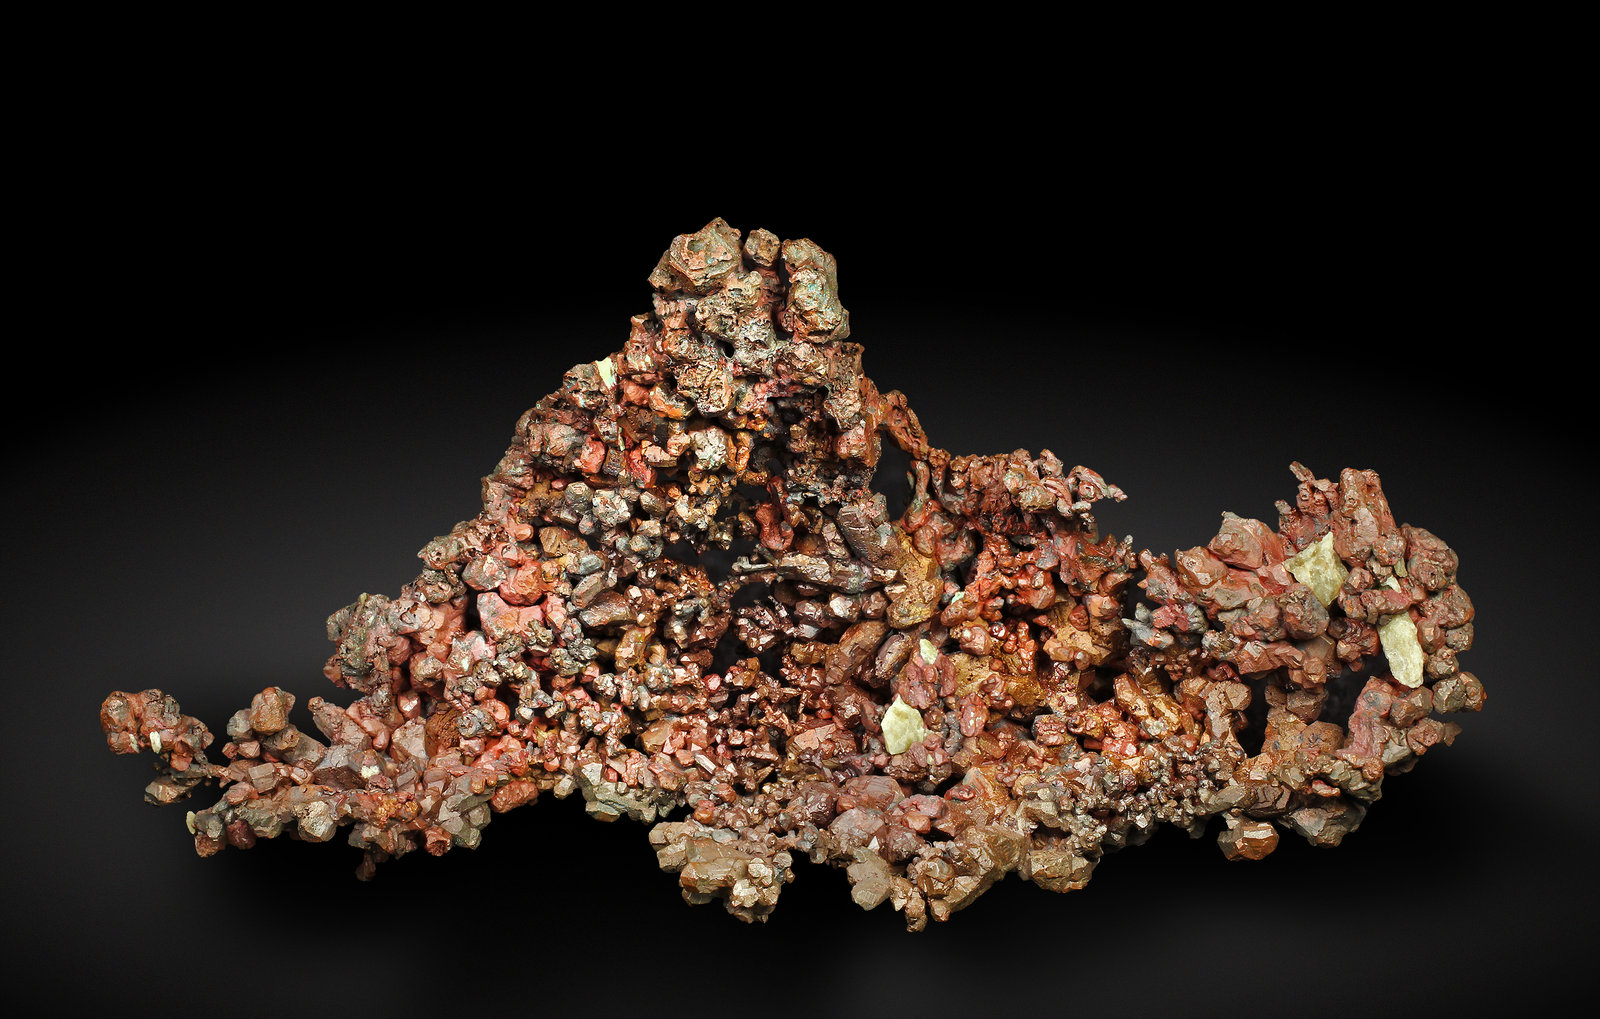 specimens/s_imagesAH3/Copper-MP7AH3_2689_f.jpg